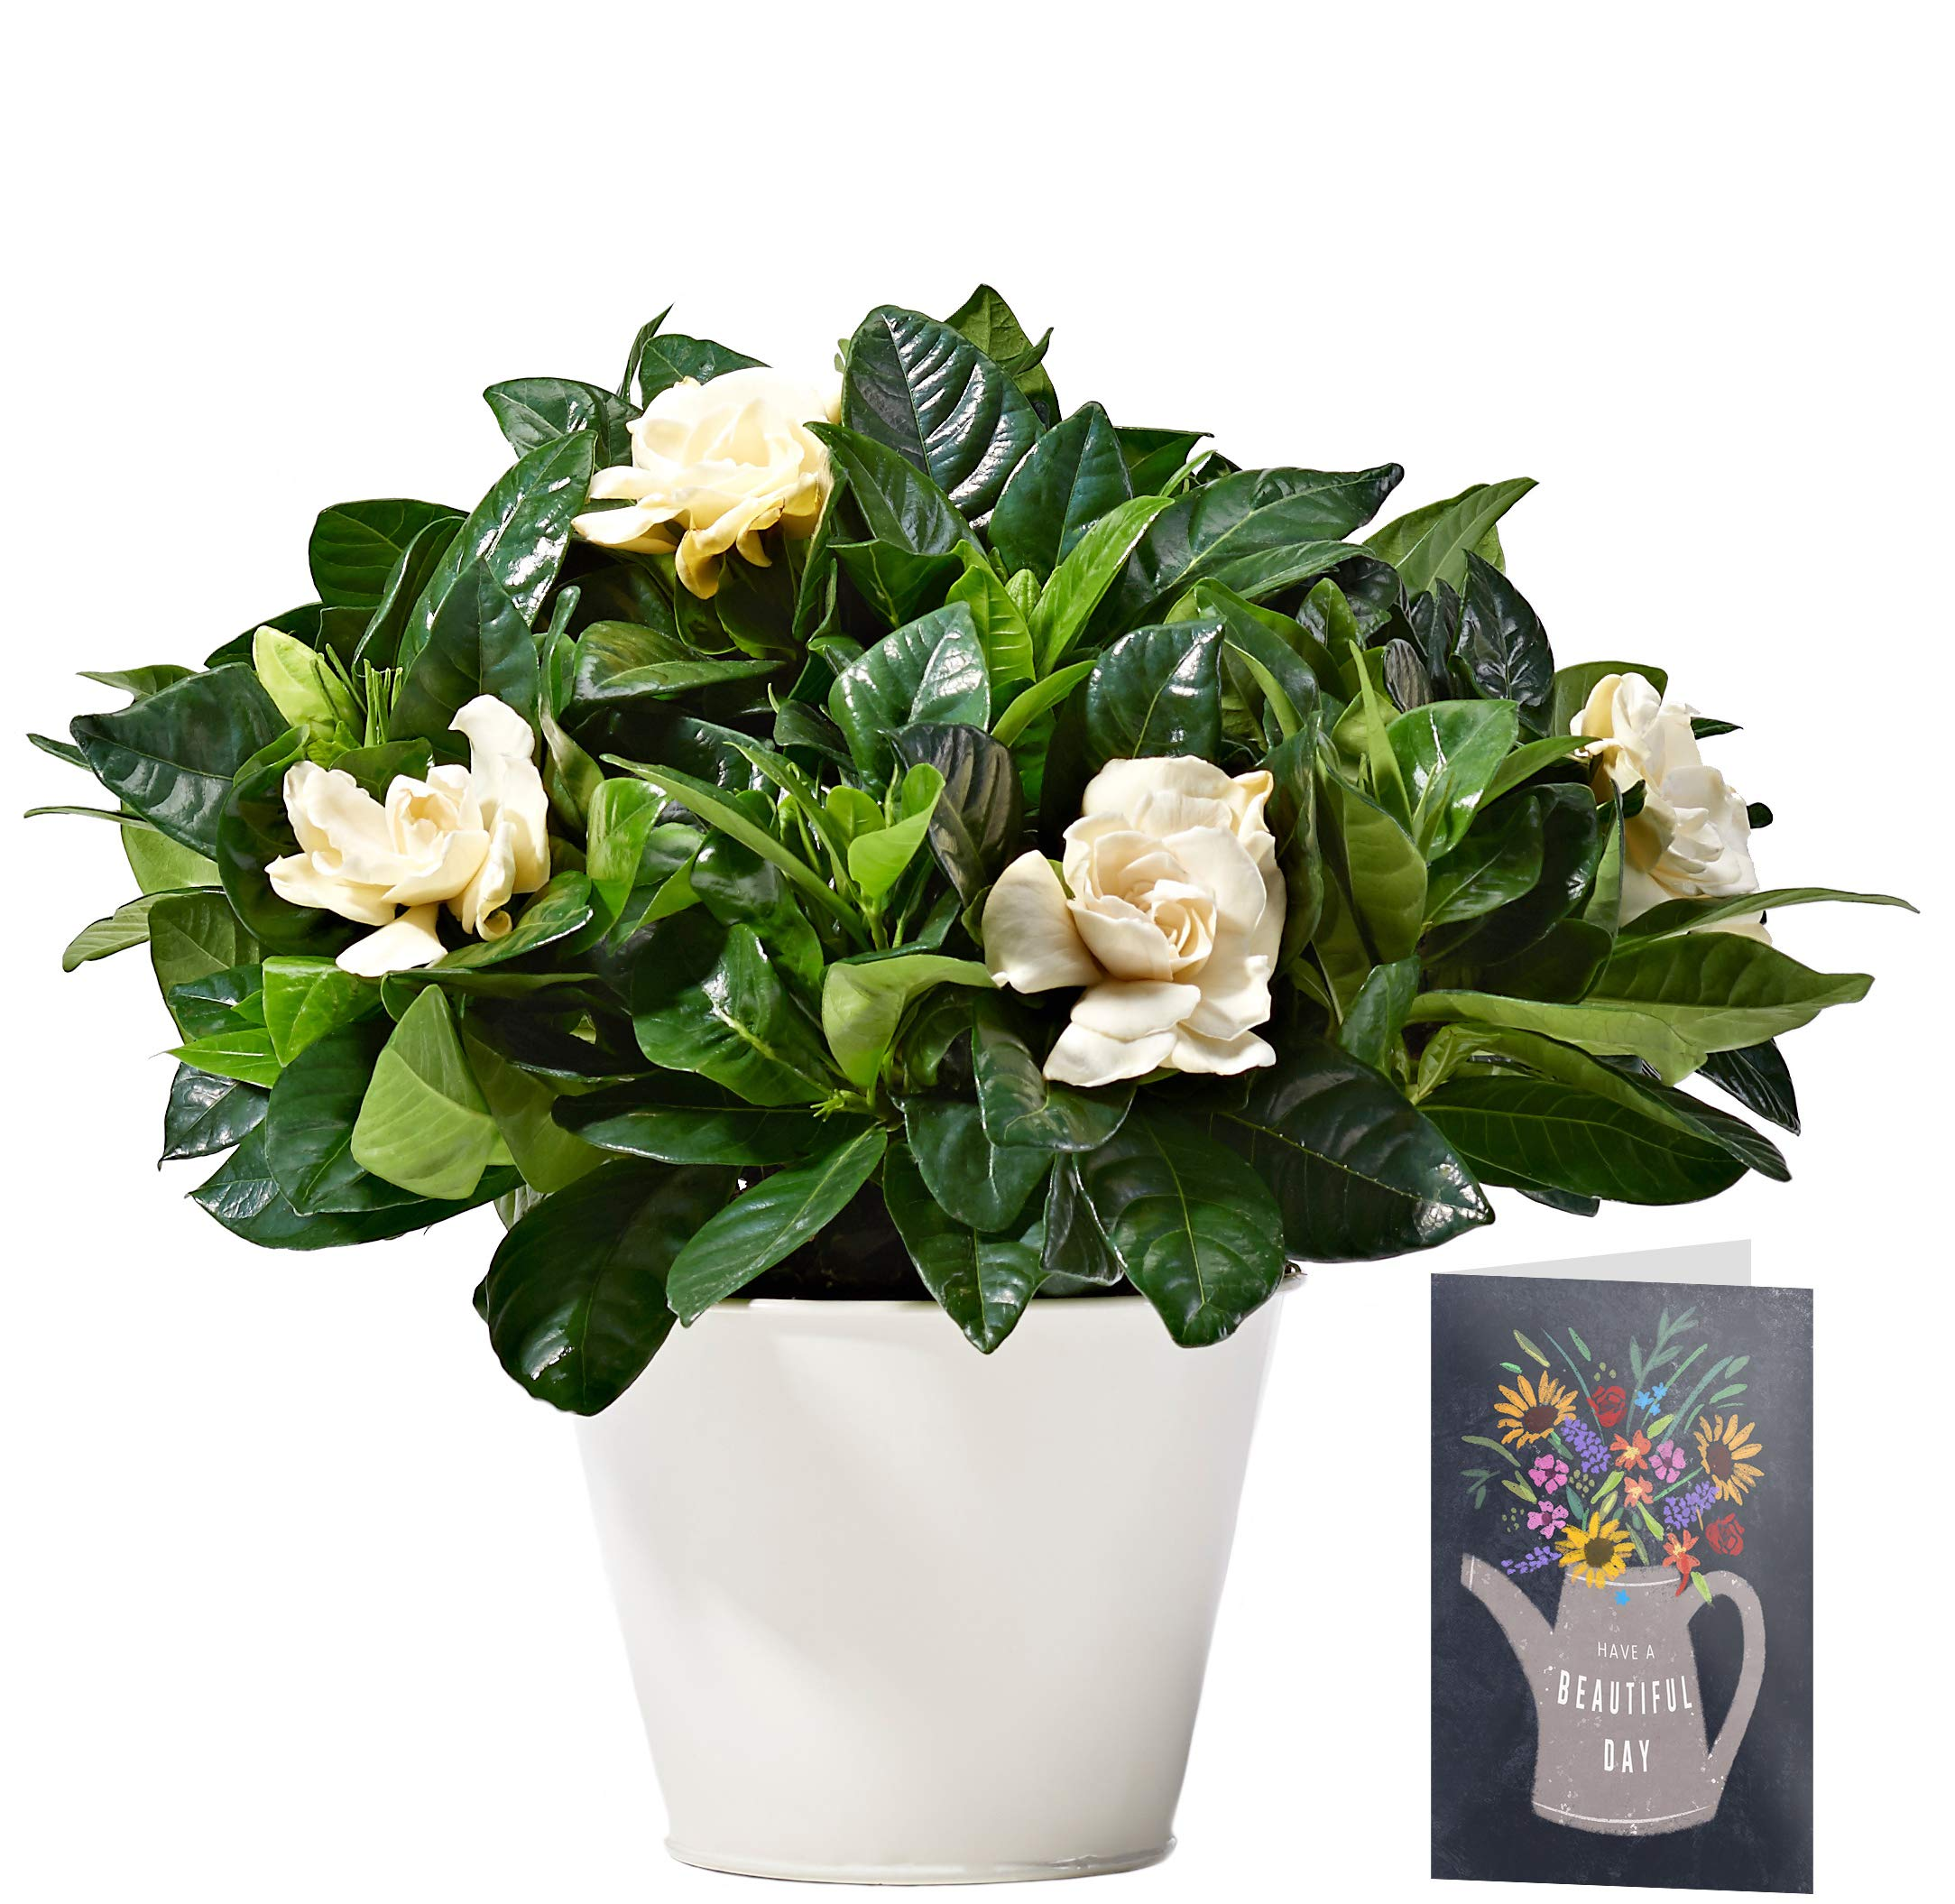 White Gardenia Plant Delivered | Free UK Delivery | Pot Included | FREE Personalised Card & Message | Our Gardenias are the Perfect Indoor House Plants | An Ideal Fresh Flower Thank You Gift for Women